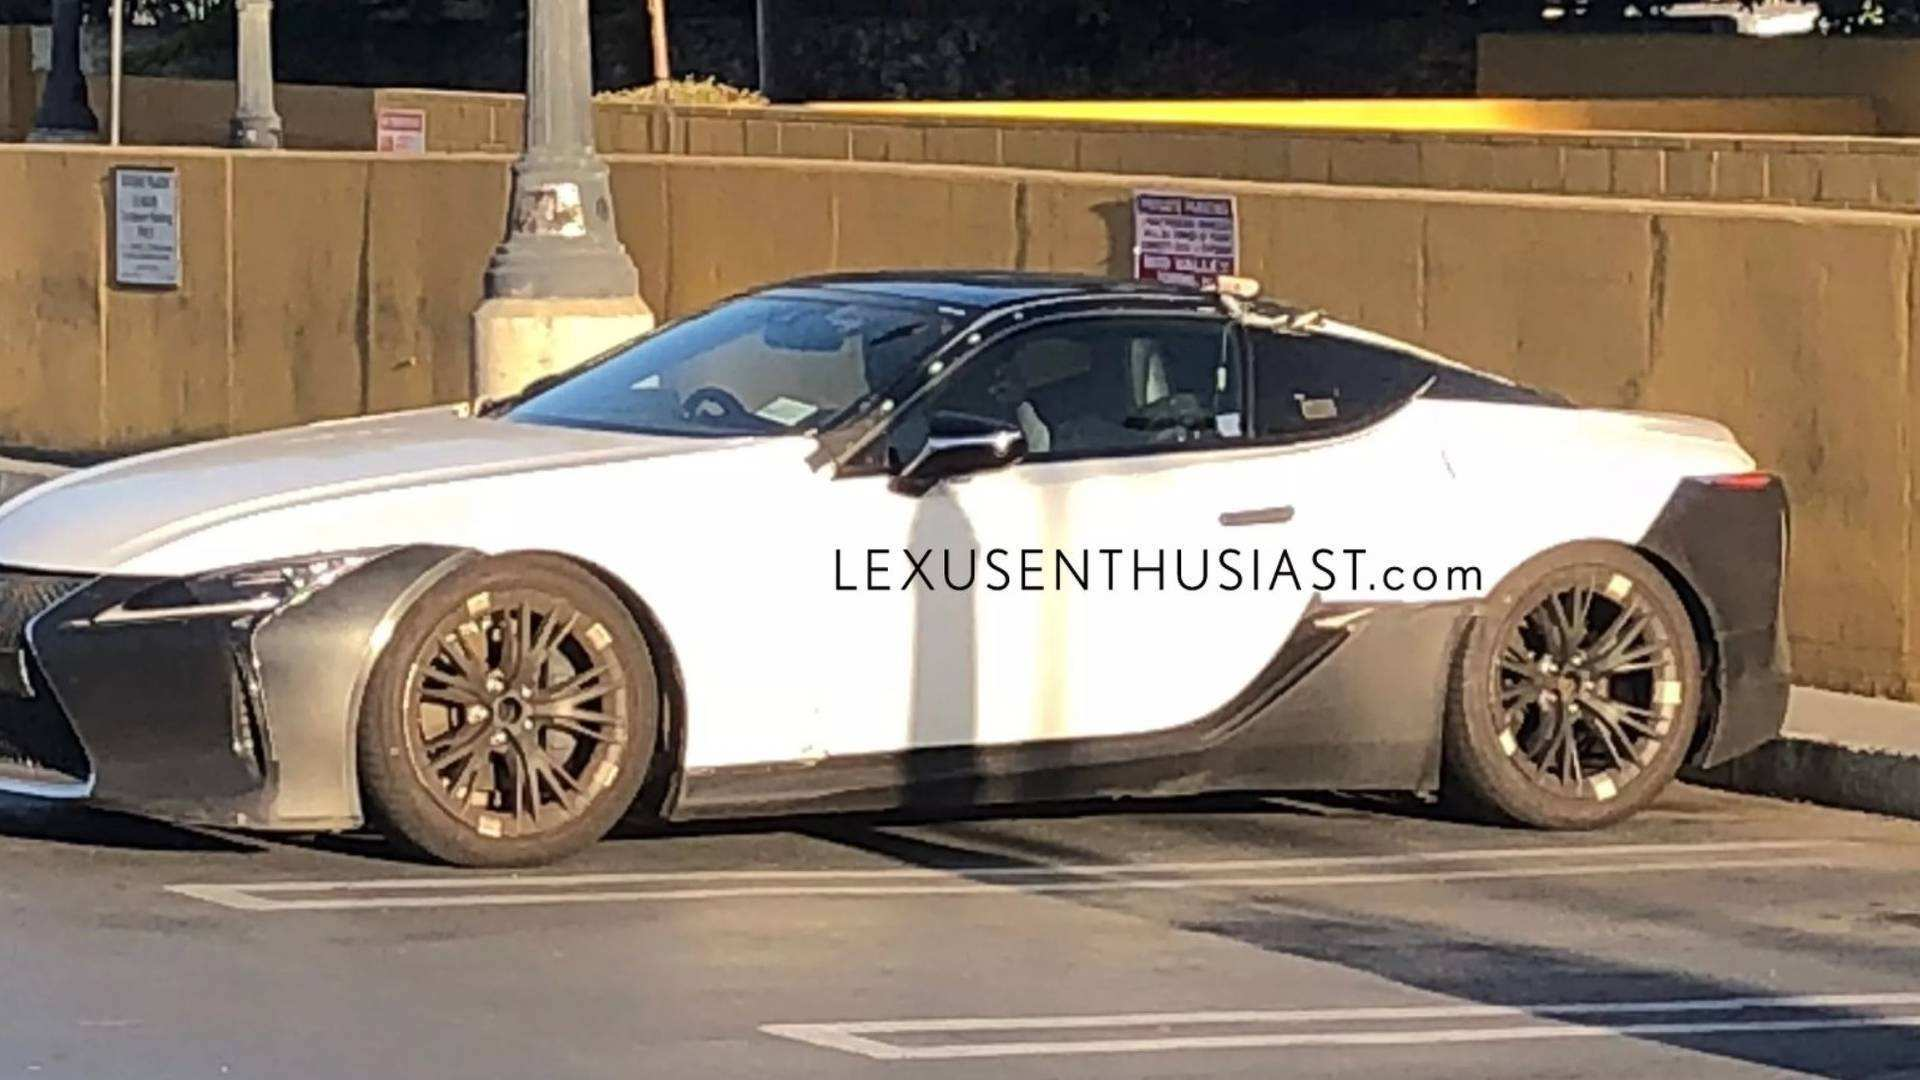 85 All New 2019 Lexus Lf Lc Release